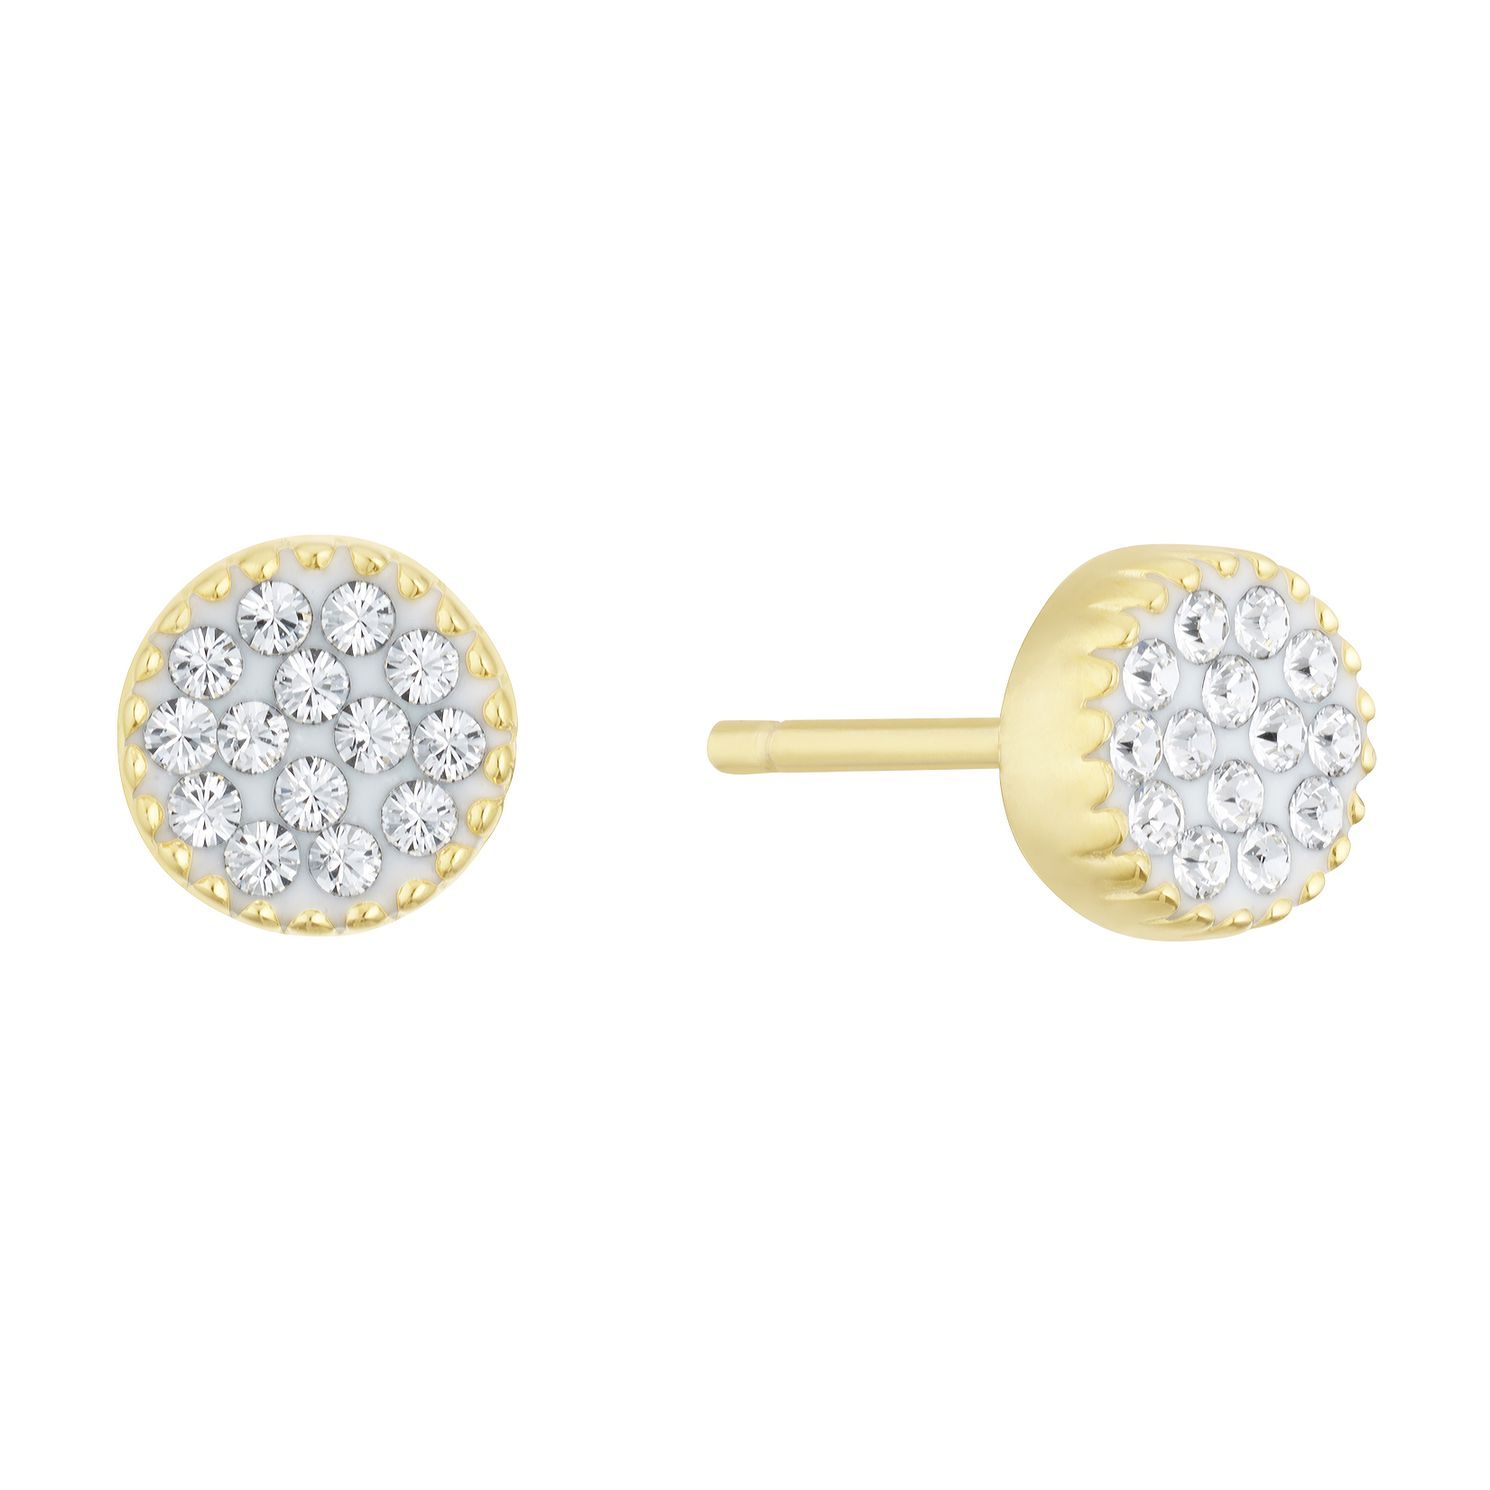 Evoke Silver & Gold Plated Crystal Round Stud Earrings - Product number 3153525